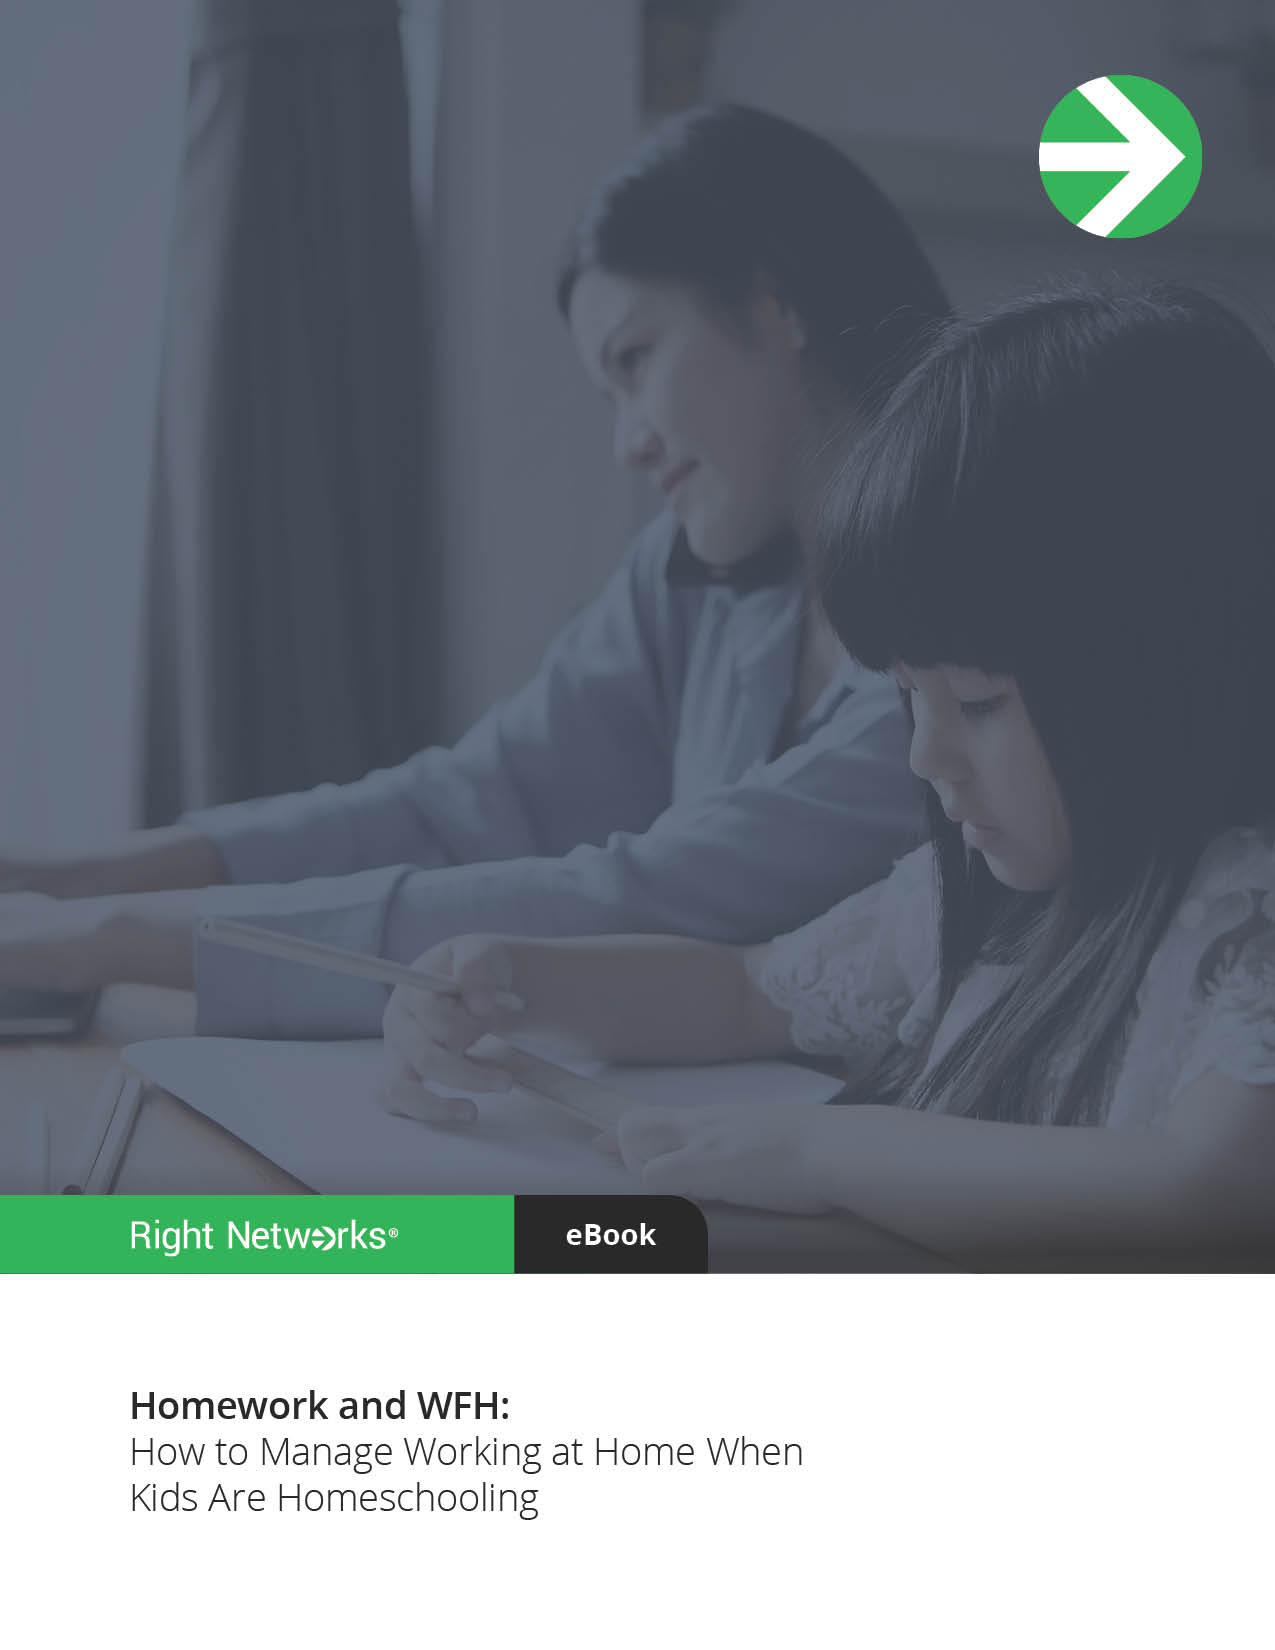 Homework and WFH: How to Manage Working at Home When Kids are Homeschooling thumbnail